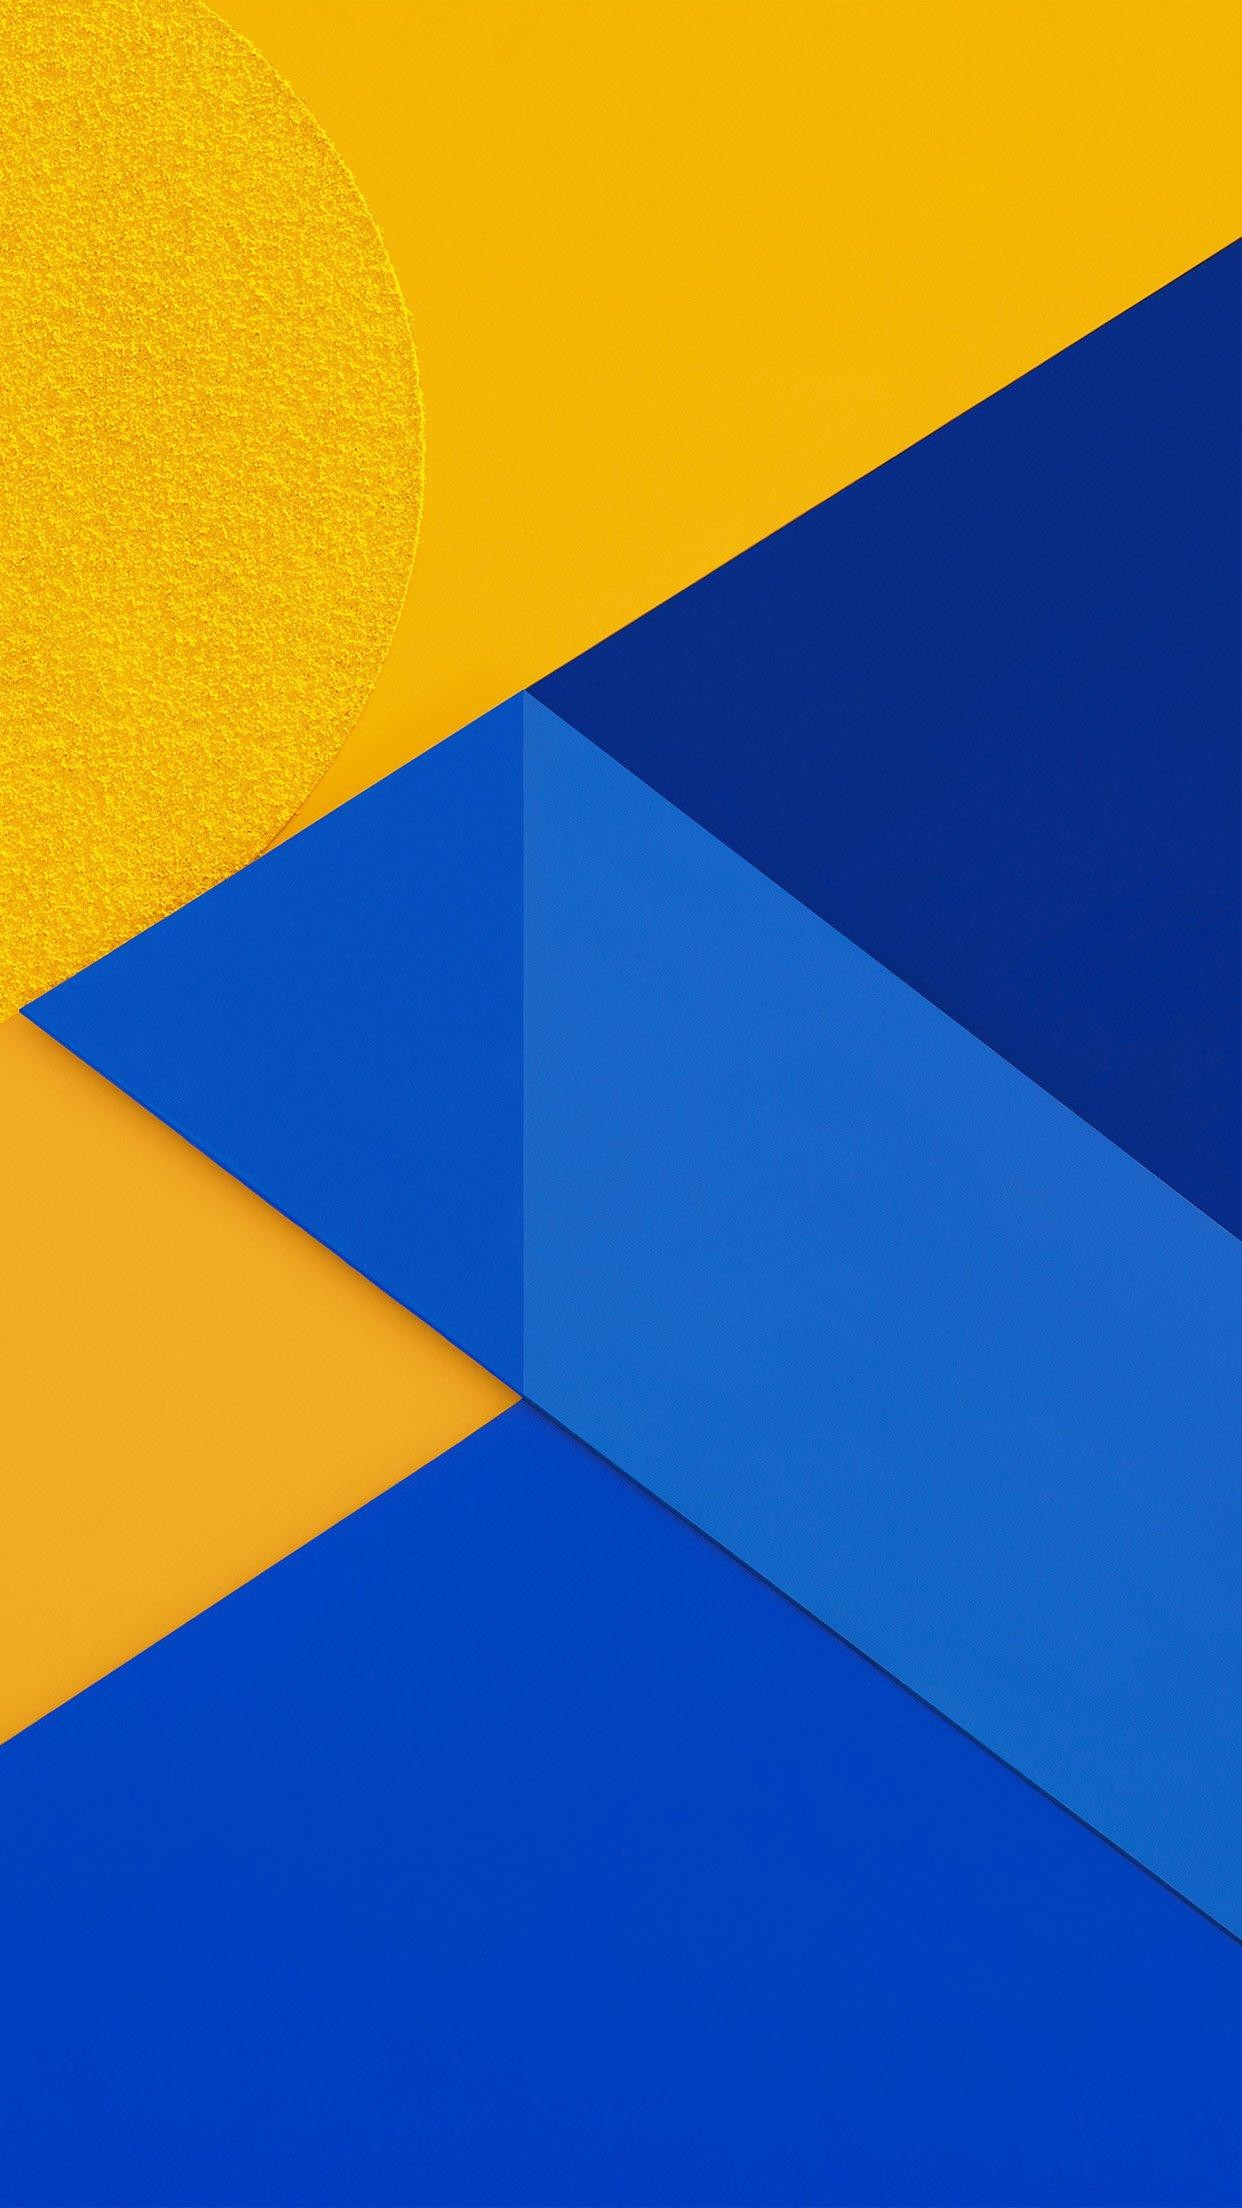 Android Marshmallow New Blue Yellow Pattern